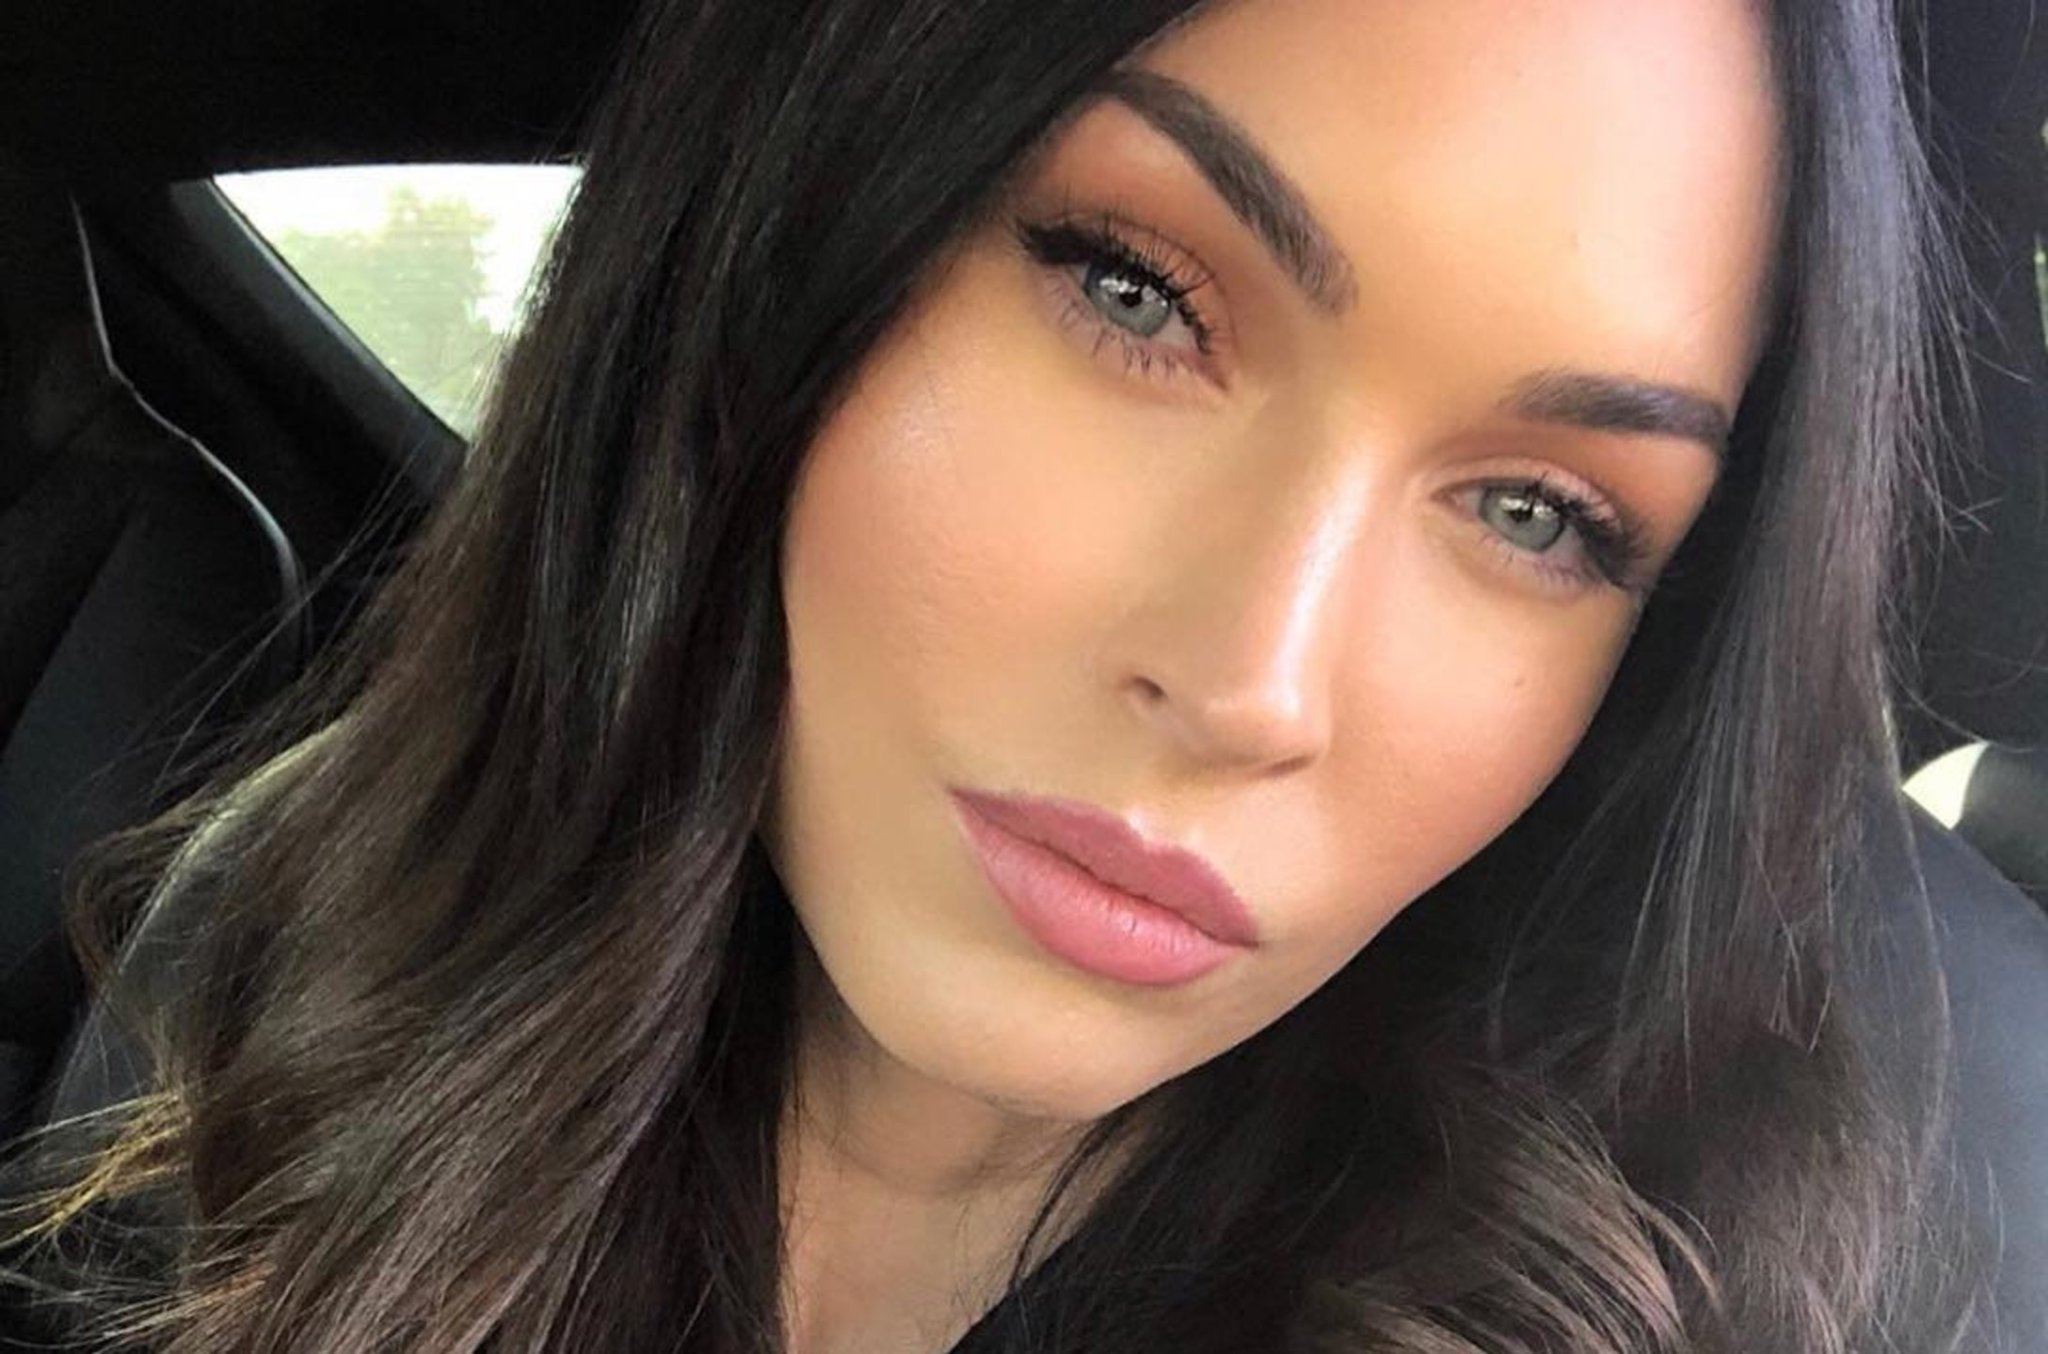 The red carpet incident that made Megan Fox stop drinking